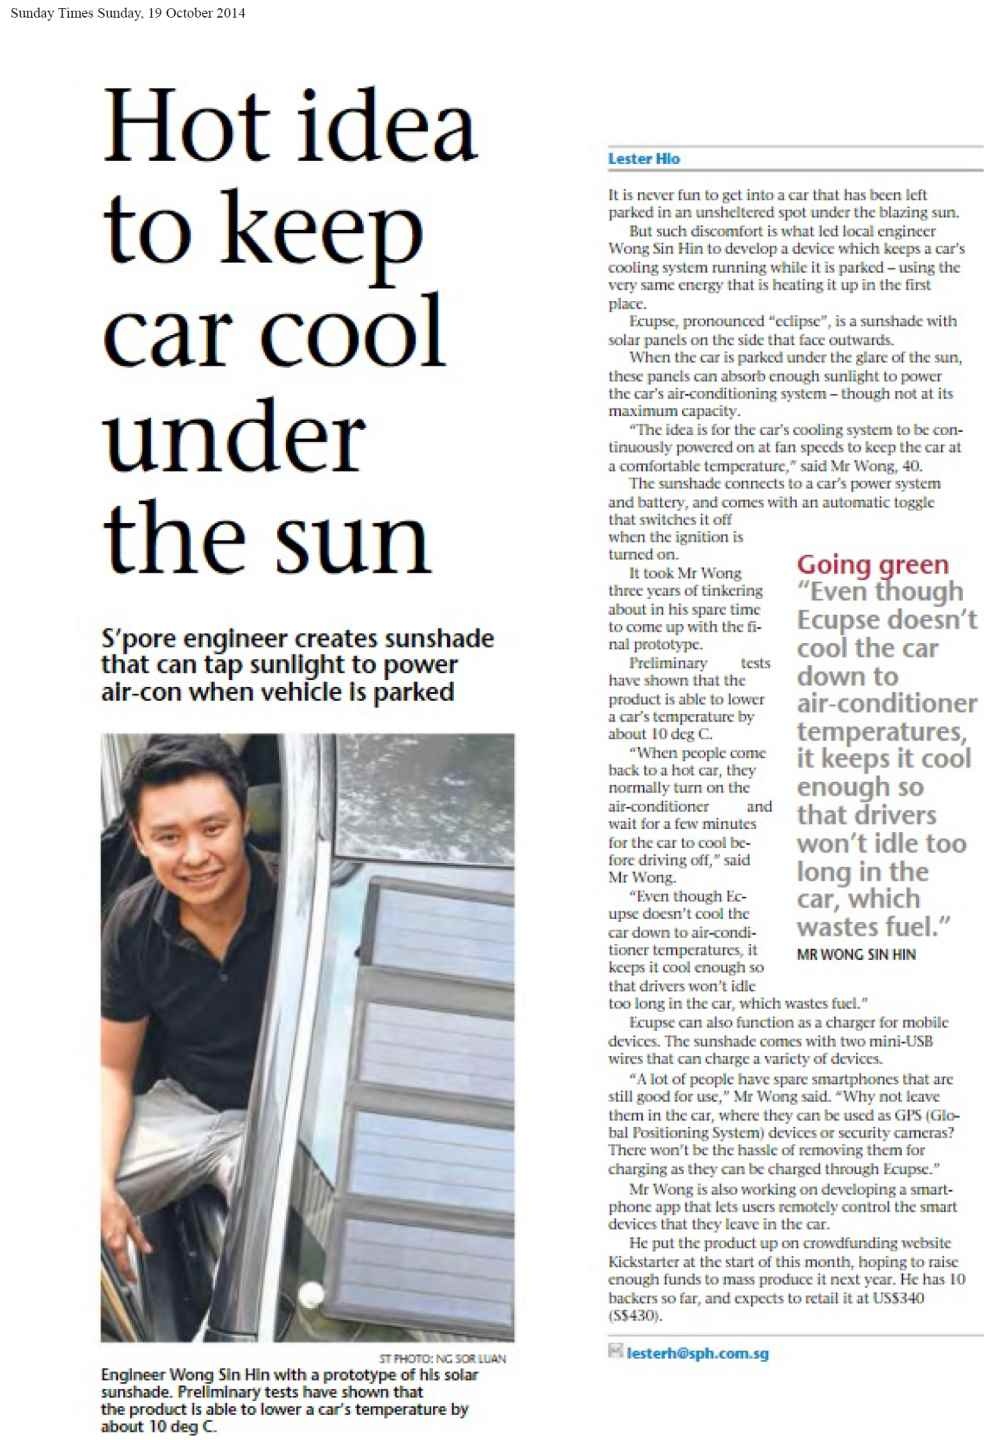 20141022C3_Sunday Times 19 Oct 2014 on SG_Hot idea to keep car cool under the sun